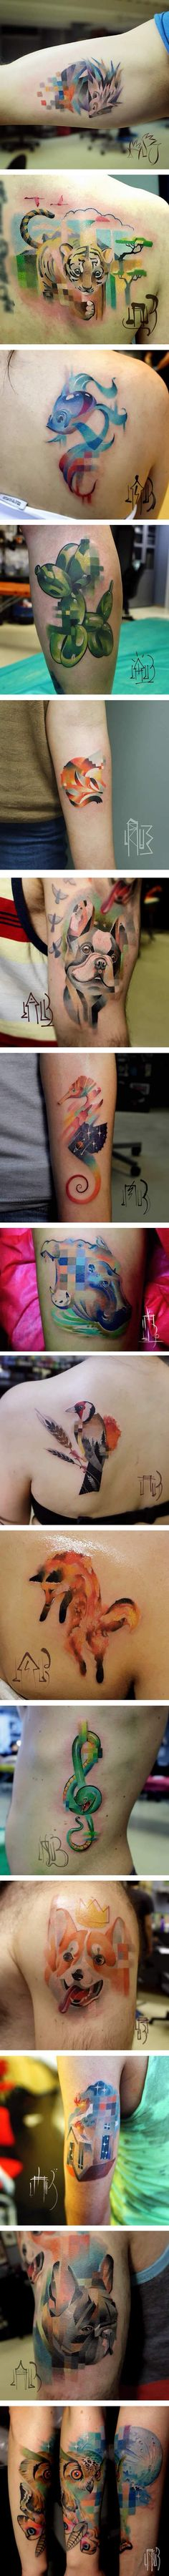 BrushStroke Tattoos Brush Stroke Tattoo Tattoo And Brush Tattoo - Artist creates amazing animal tattoos with digital pixel glitches